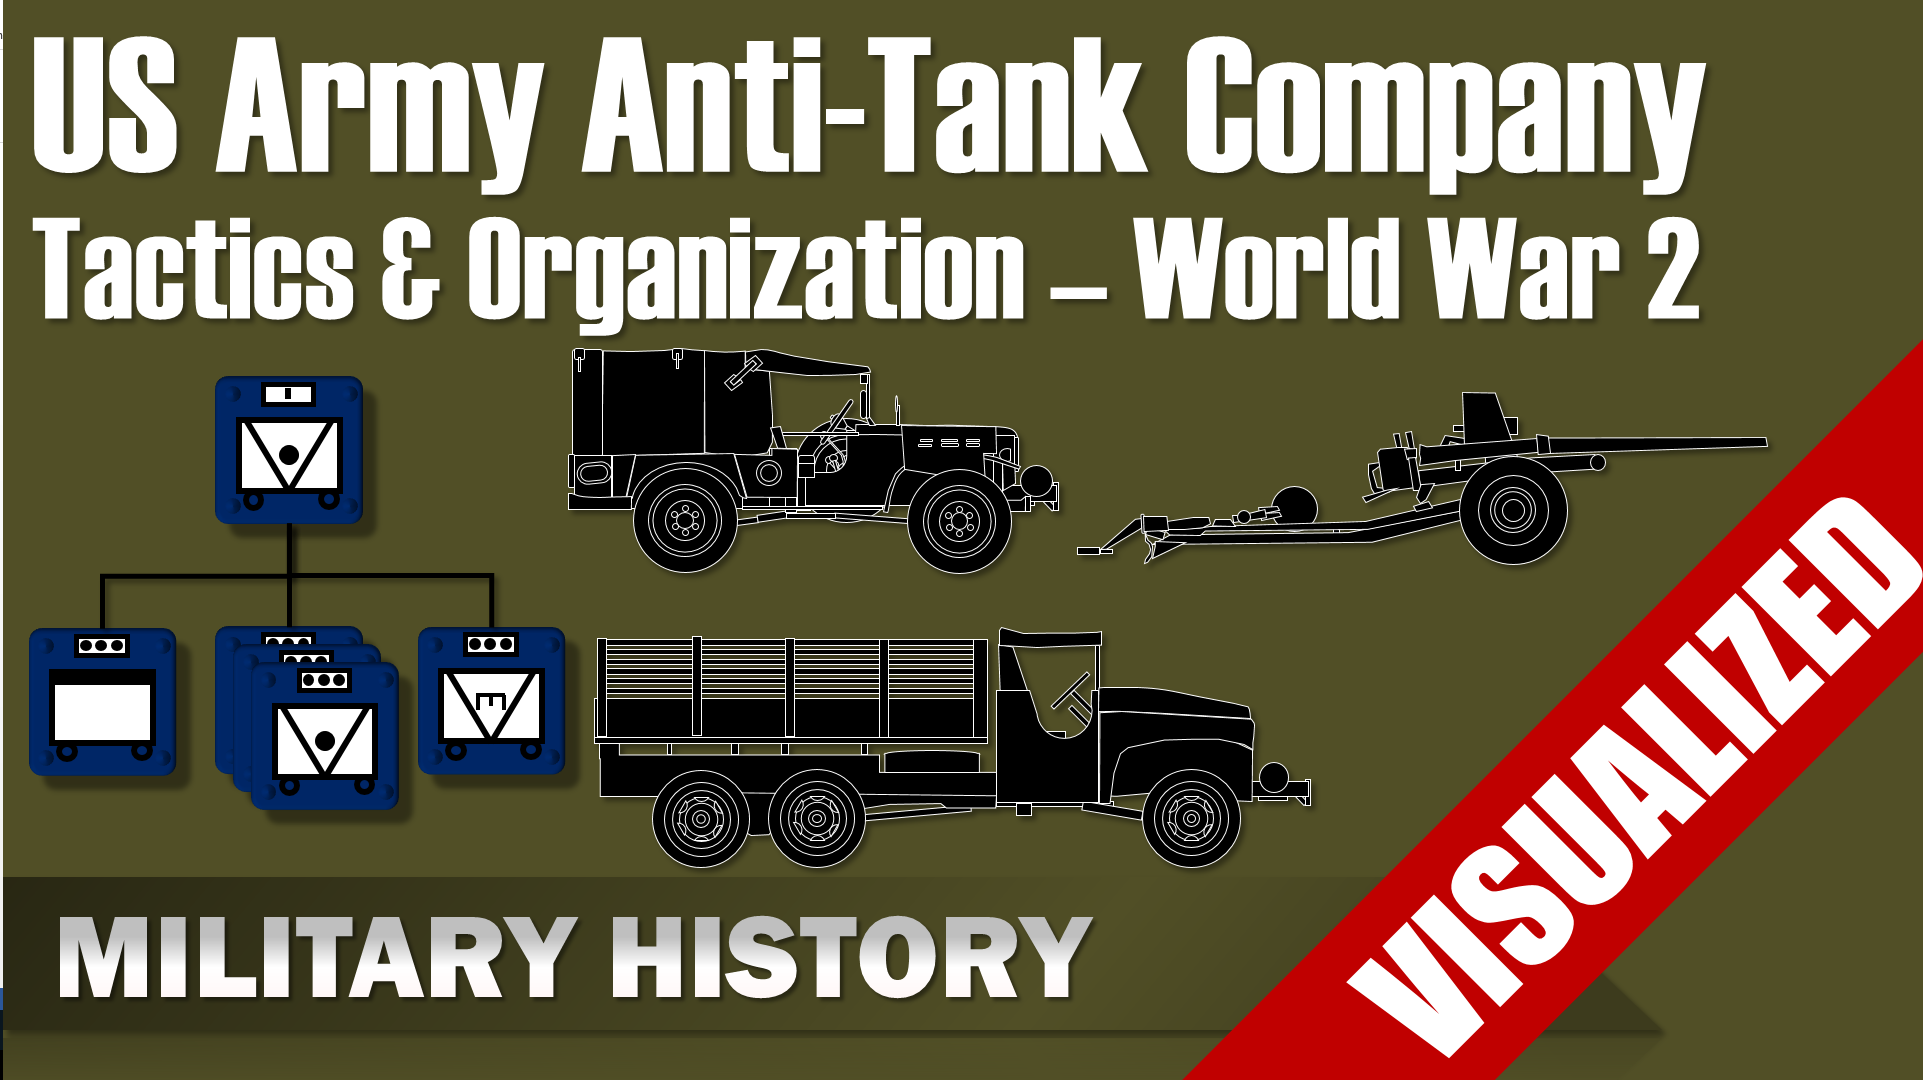 [US Army] Anti-Tank Company – Tactics & Organization – World War 2